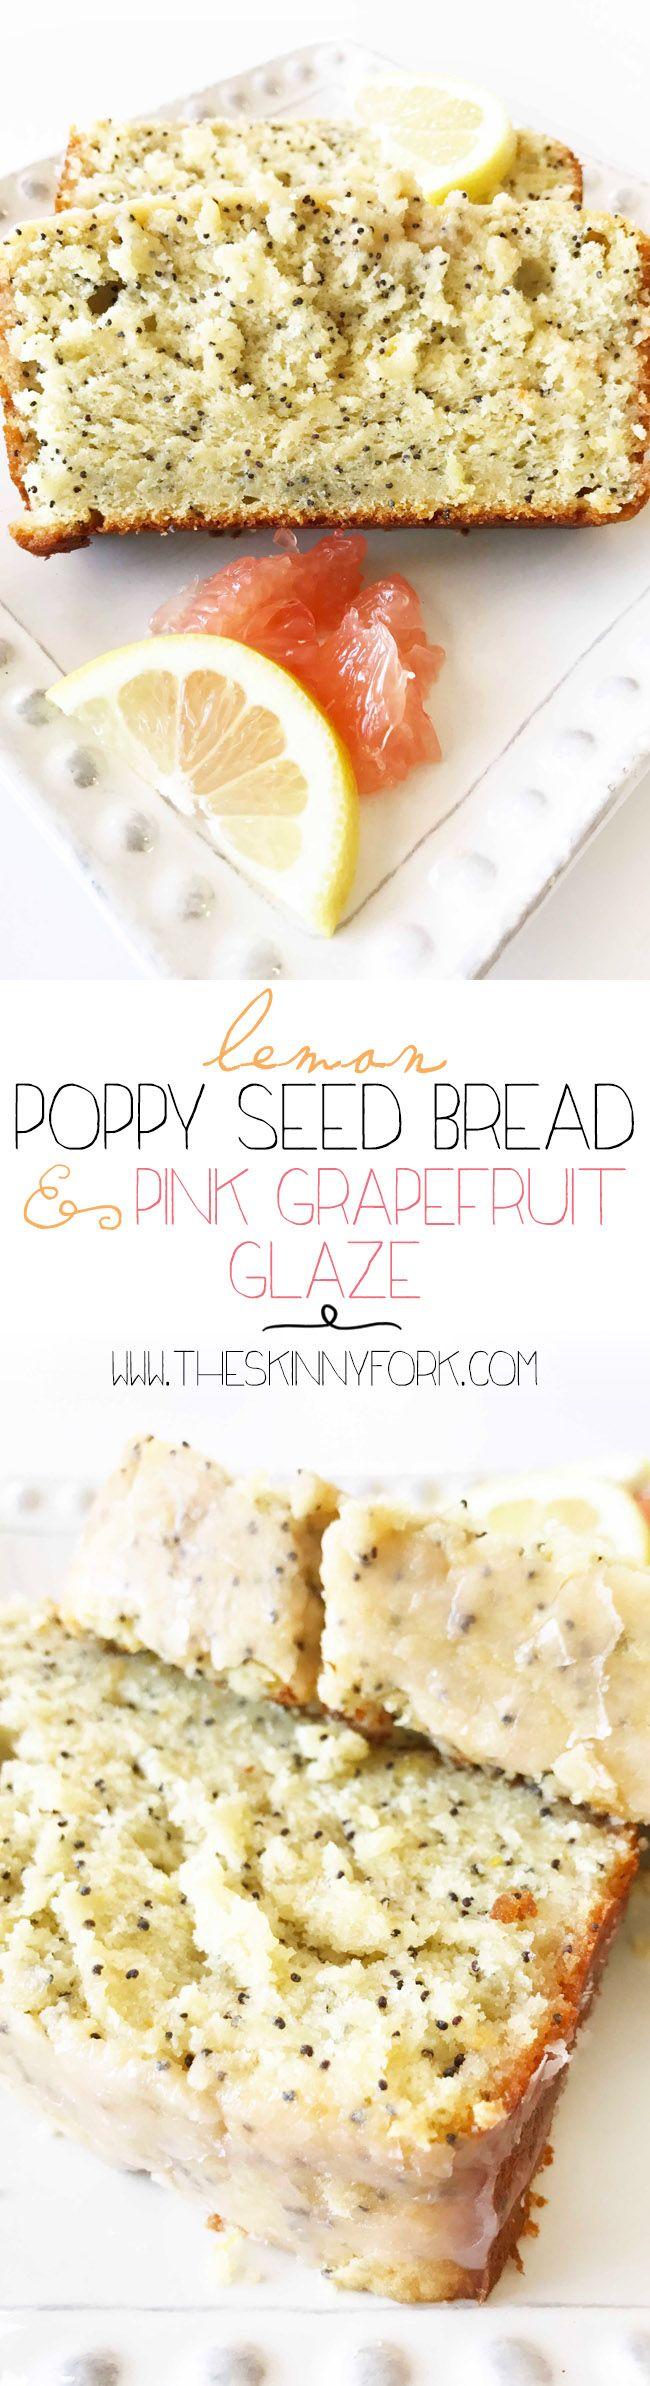 The past few days have been absolutely gorgeous here! I'm celebrating the on-coming season of spring with this fabulous Lemon Poppy Seed Bread & Pink Grapefruit Glaze! This bread is lightened up, but don't let that fool you! It's light and fluffy and perfectly moist. Yum! Perfect for breakfast, brunch, or dessert!